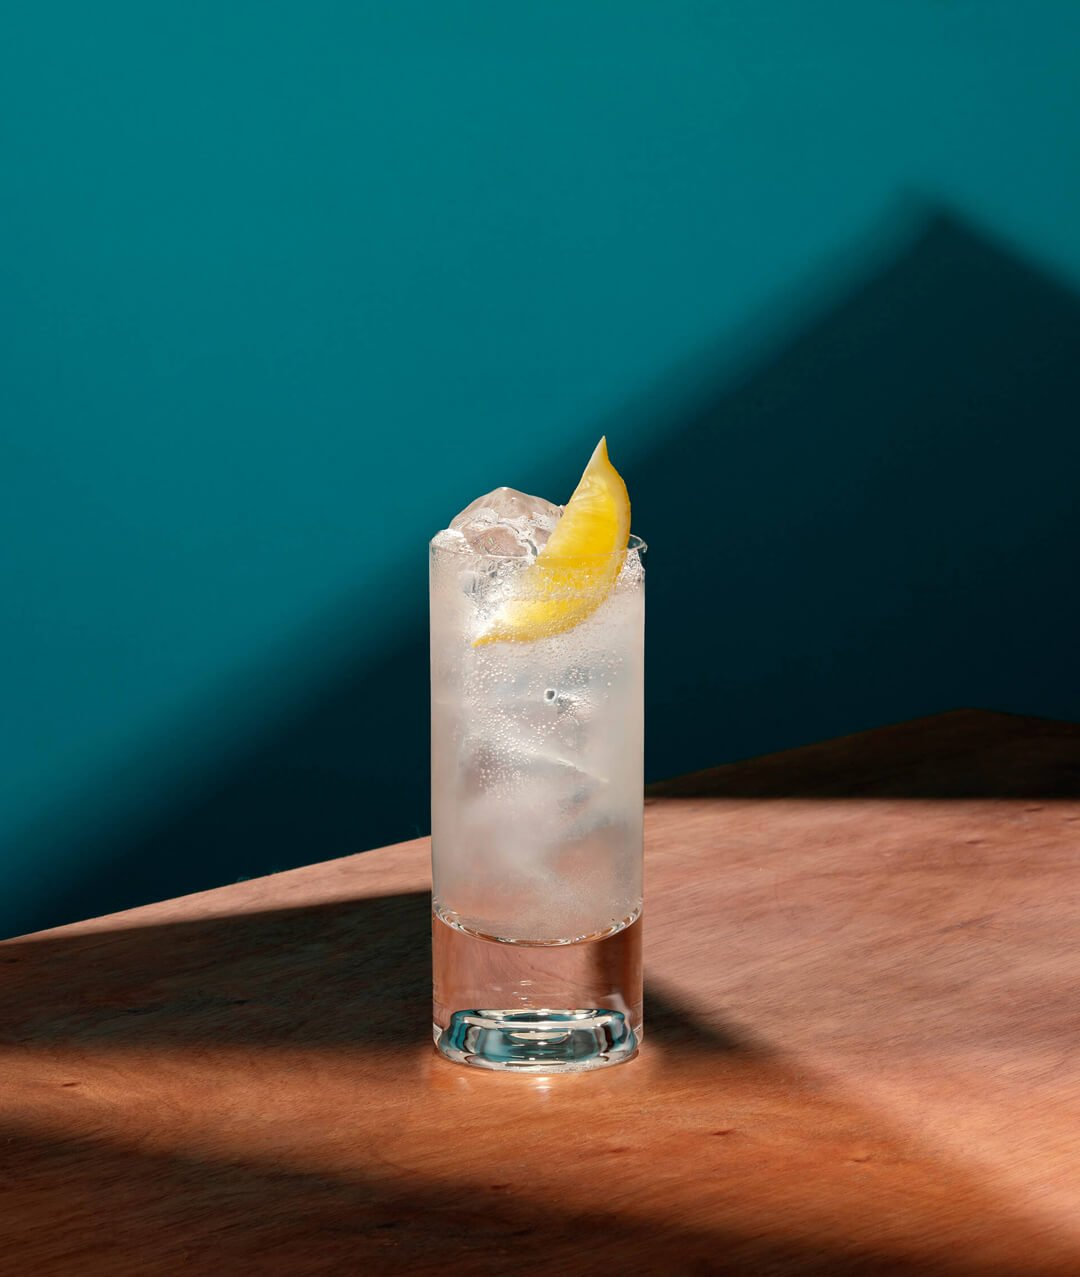 Botanical Dry Collins, an alcohol-free Tom Collins